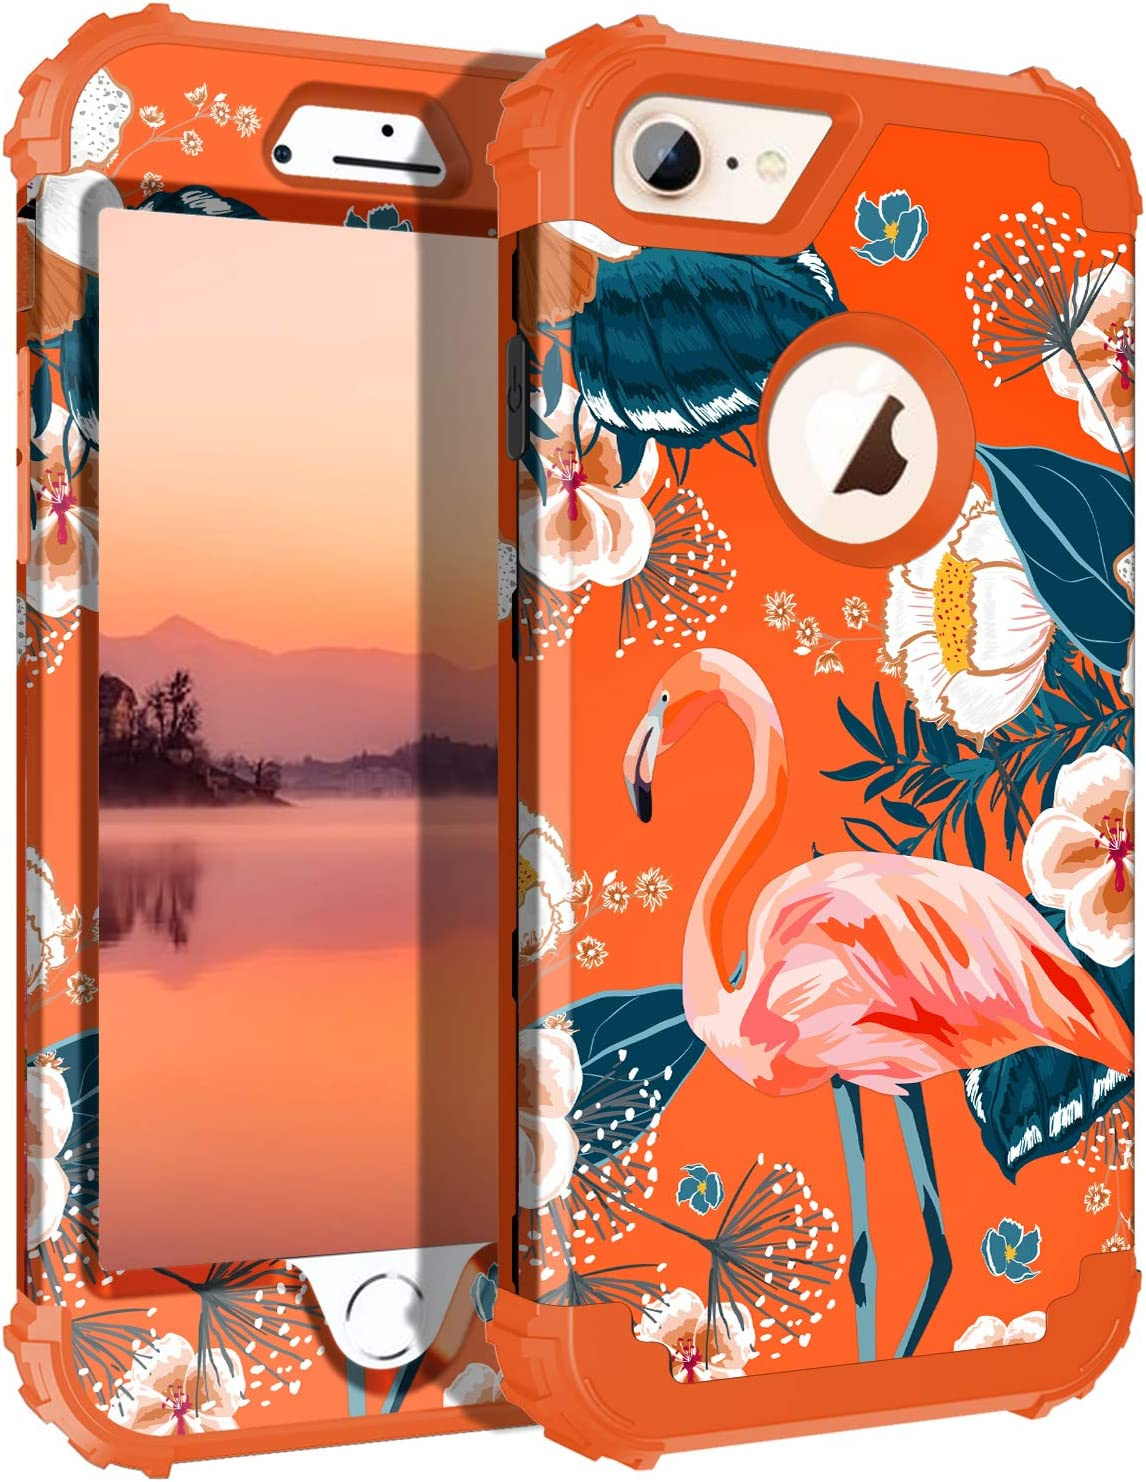 Casetego Compatible with iPhone 8 Case,iPhone 7 Case,Floral Three Layer Heavy Duty Hybrid Sturdy Shockproof Full Body Protective Cover Case for Apple iPhone 8/7,Flamingo